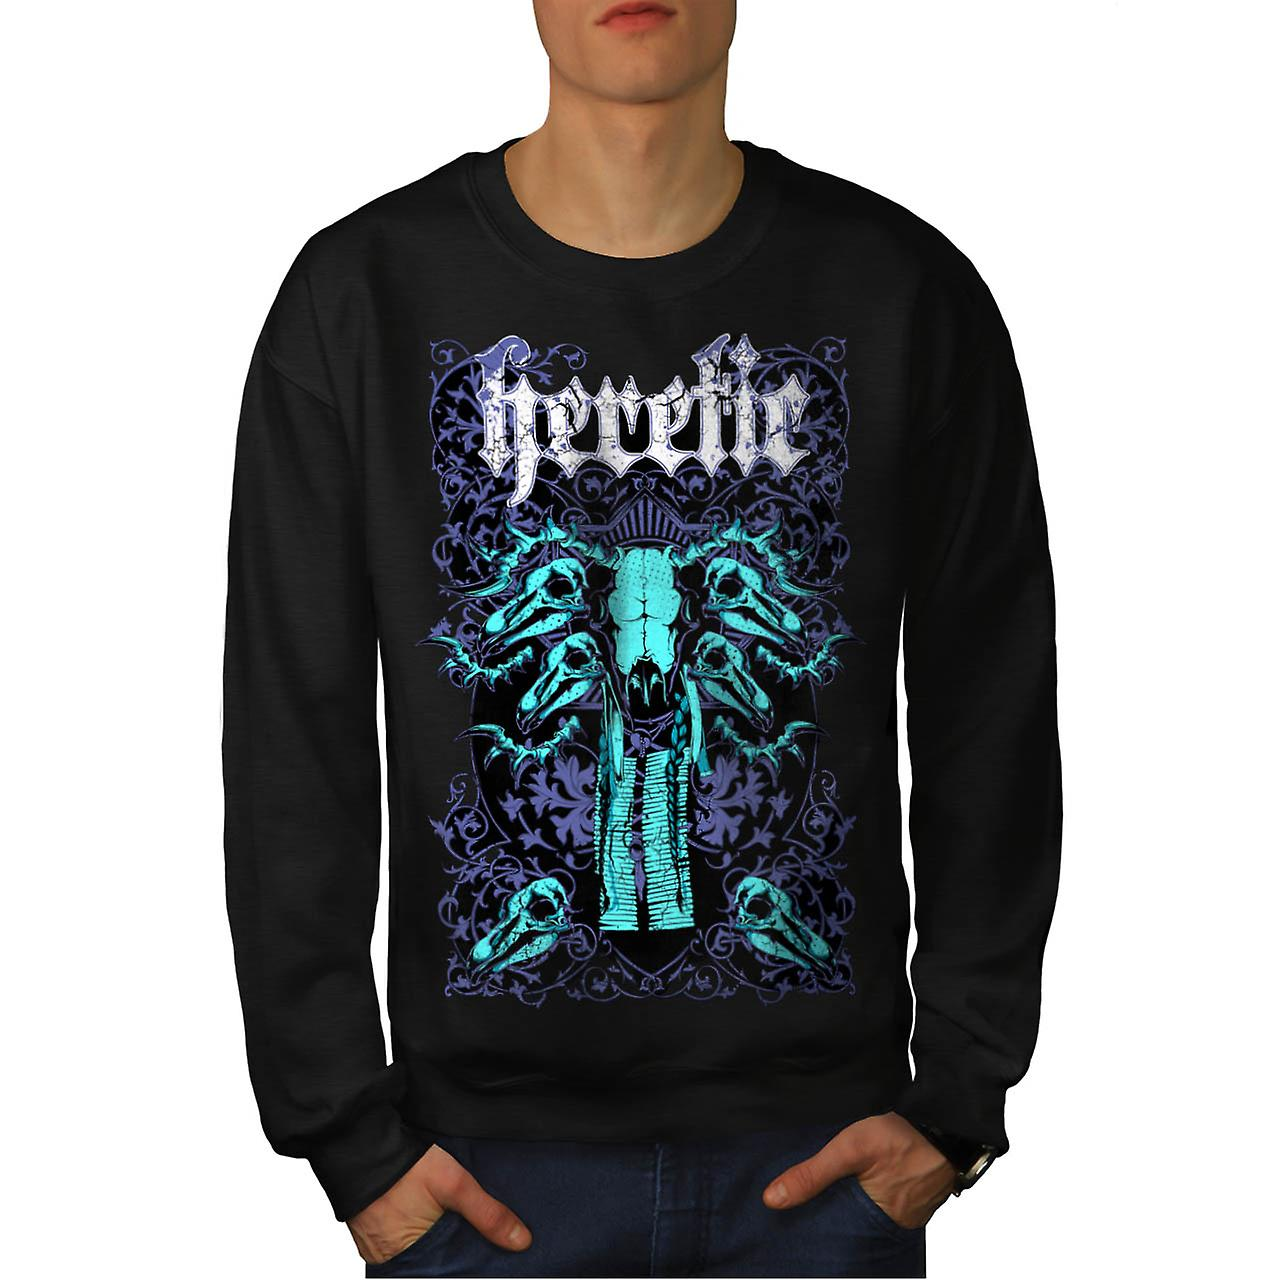 Heretic Monster Hell Giant Skull Men Black Sweatshirt | Wellcoda